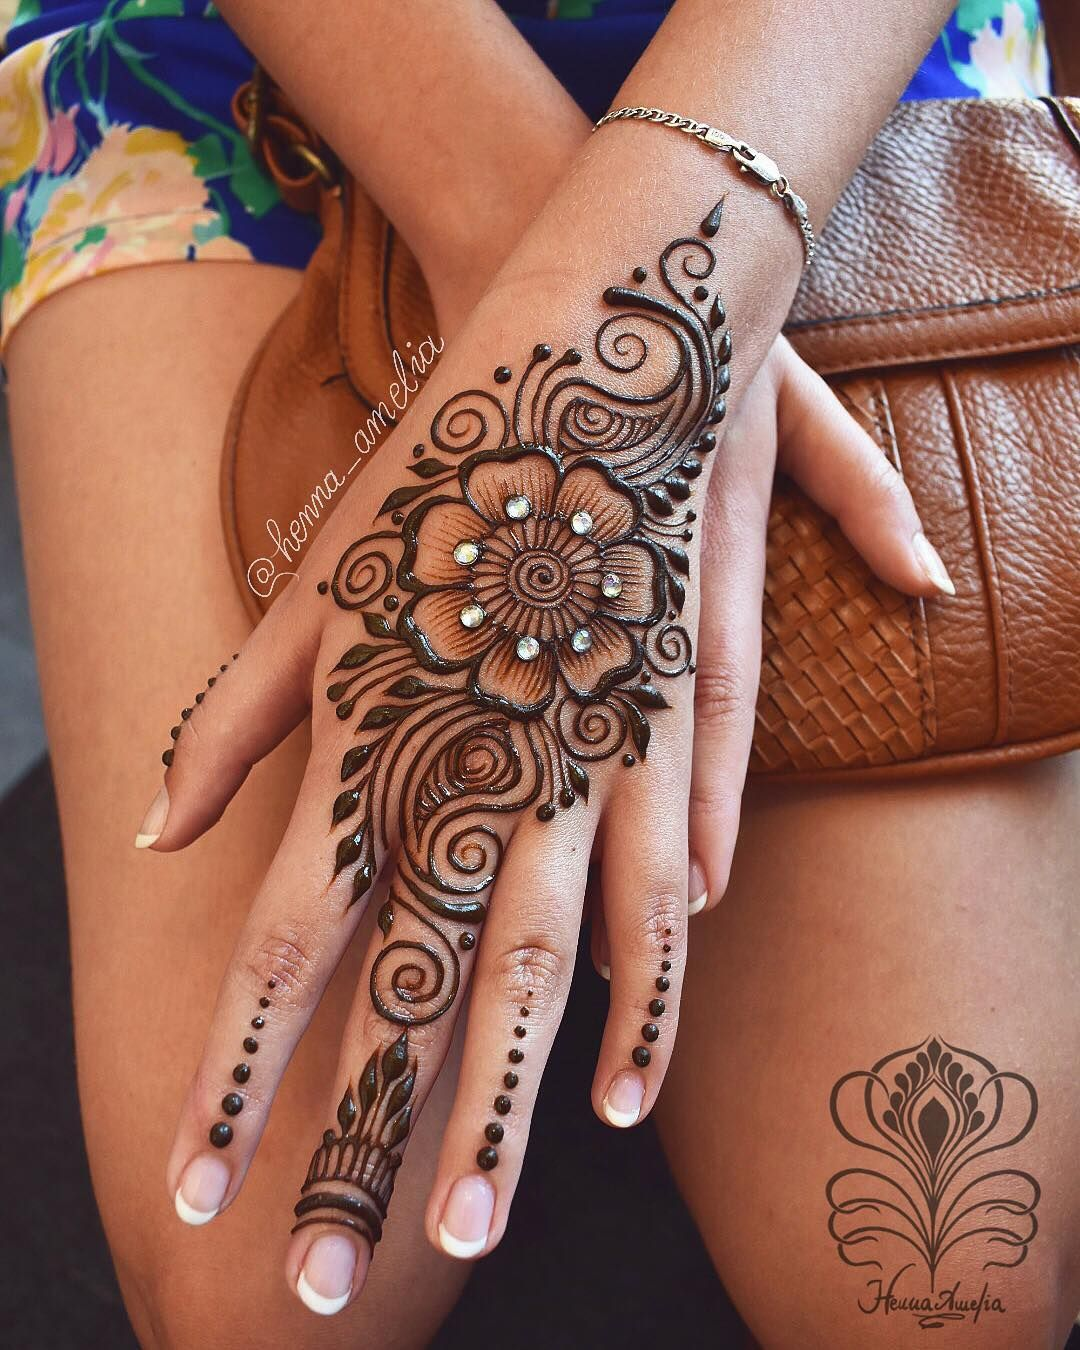 Easy Mehndi Designs Collection For Hand 2019 K4 Fashion In 2020 Latest Mehndi Designs Mehndi Designs For Fingers Henna Tattoo Designs Hand